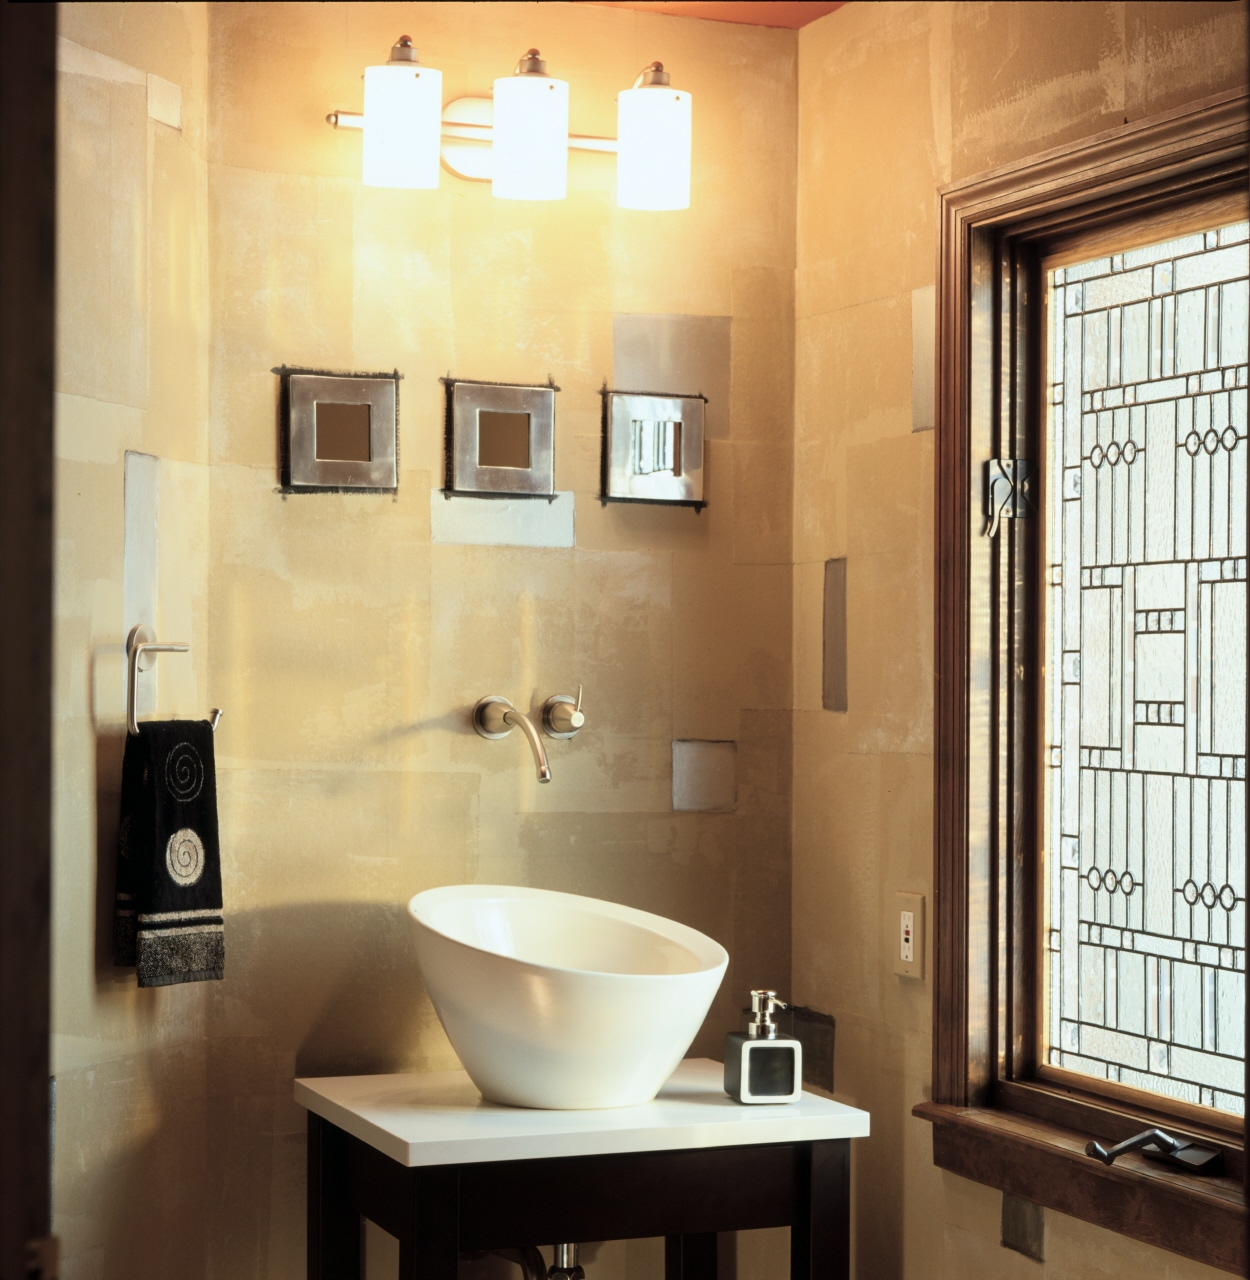 Half bath design ideas home design for Small half bathroom designs